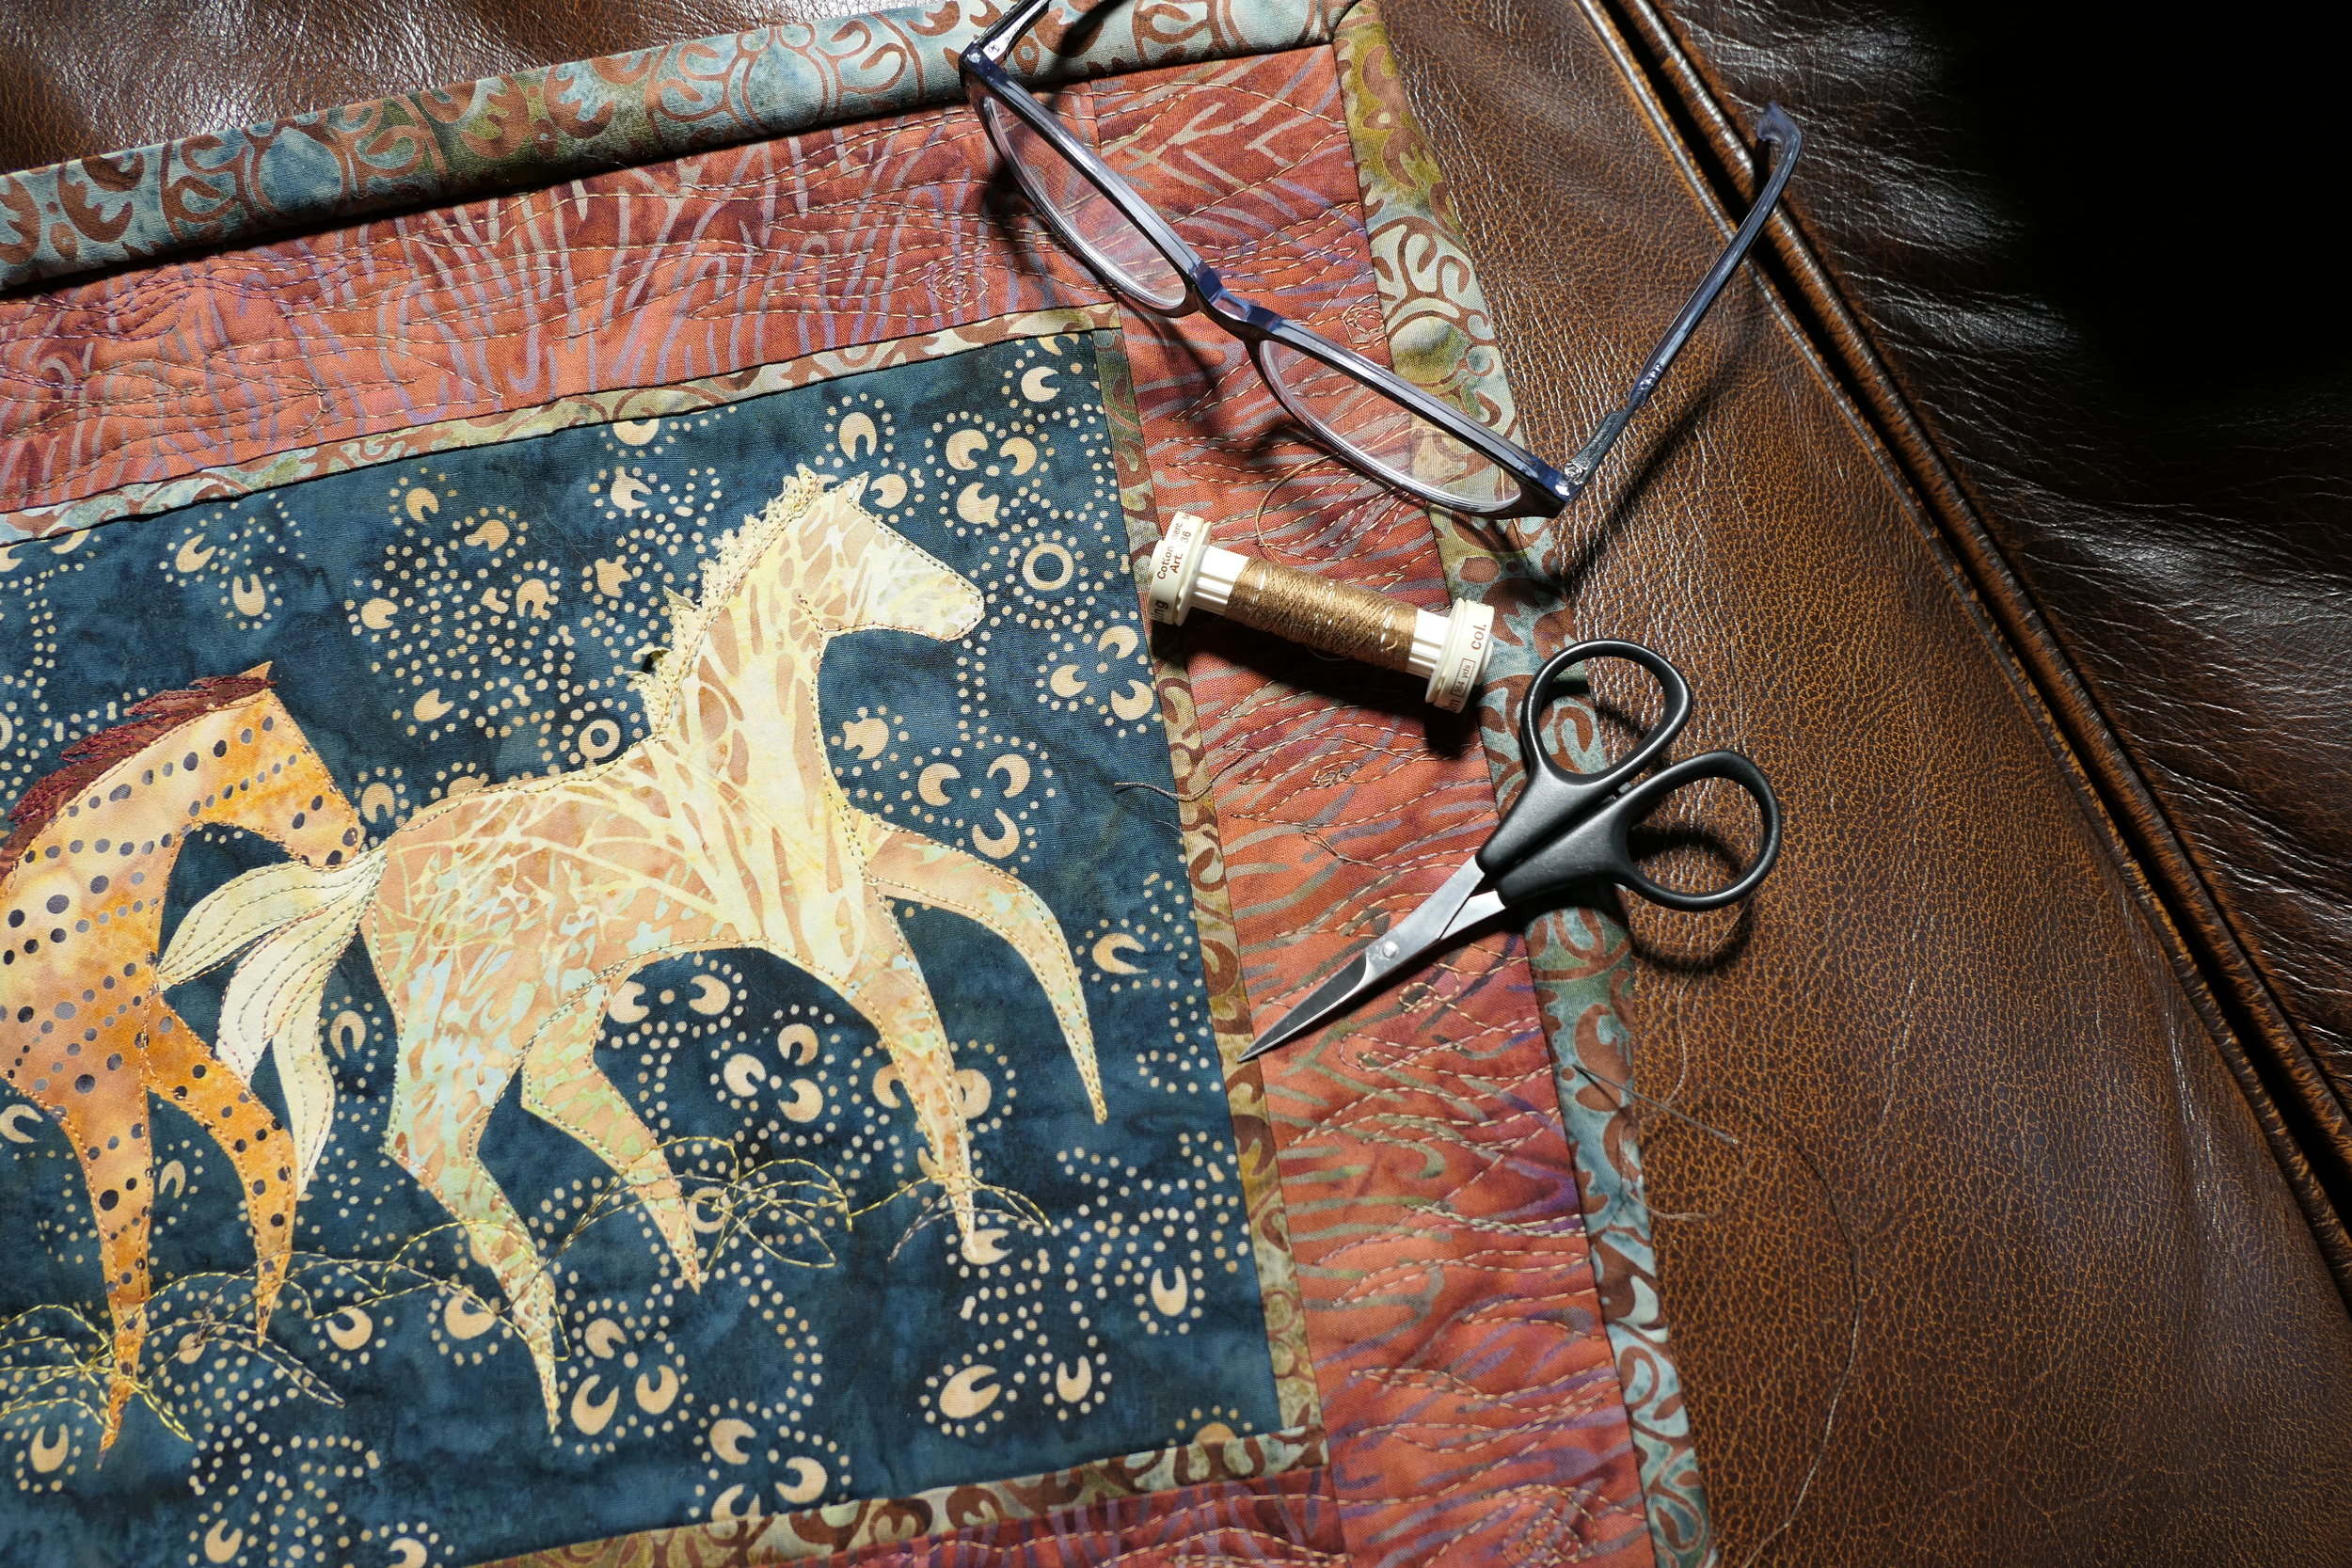 Download QuiltSunriver's first free project pattern! Our Sunriver Stampede Table Runner reflects the excitement of the Sunriver Stables herd as they thunder across their pasture every day during the warmer months of the year, just one of the many things to enjoy during your QuiltSunriver retreat!